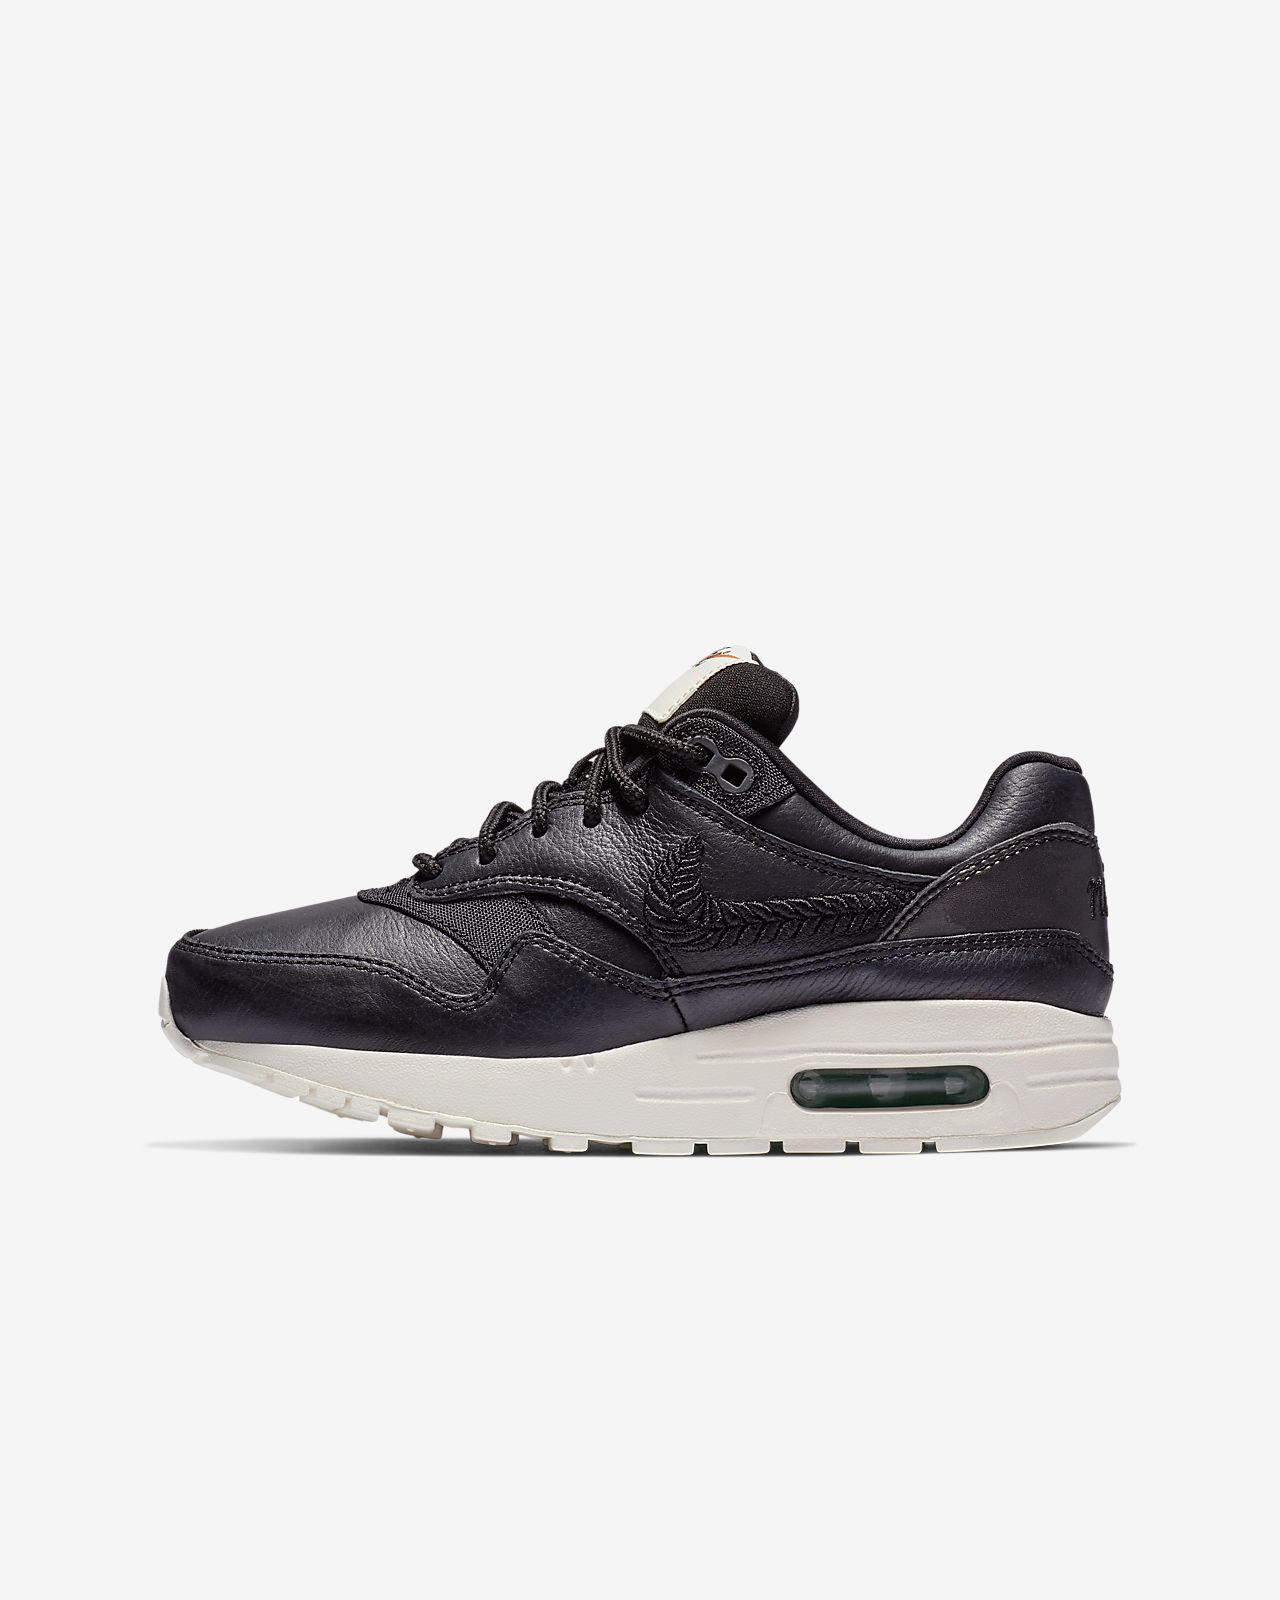 official photos a1fb2 dbb74 Nike Air Max 1 Premium Embroidered